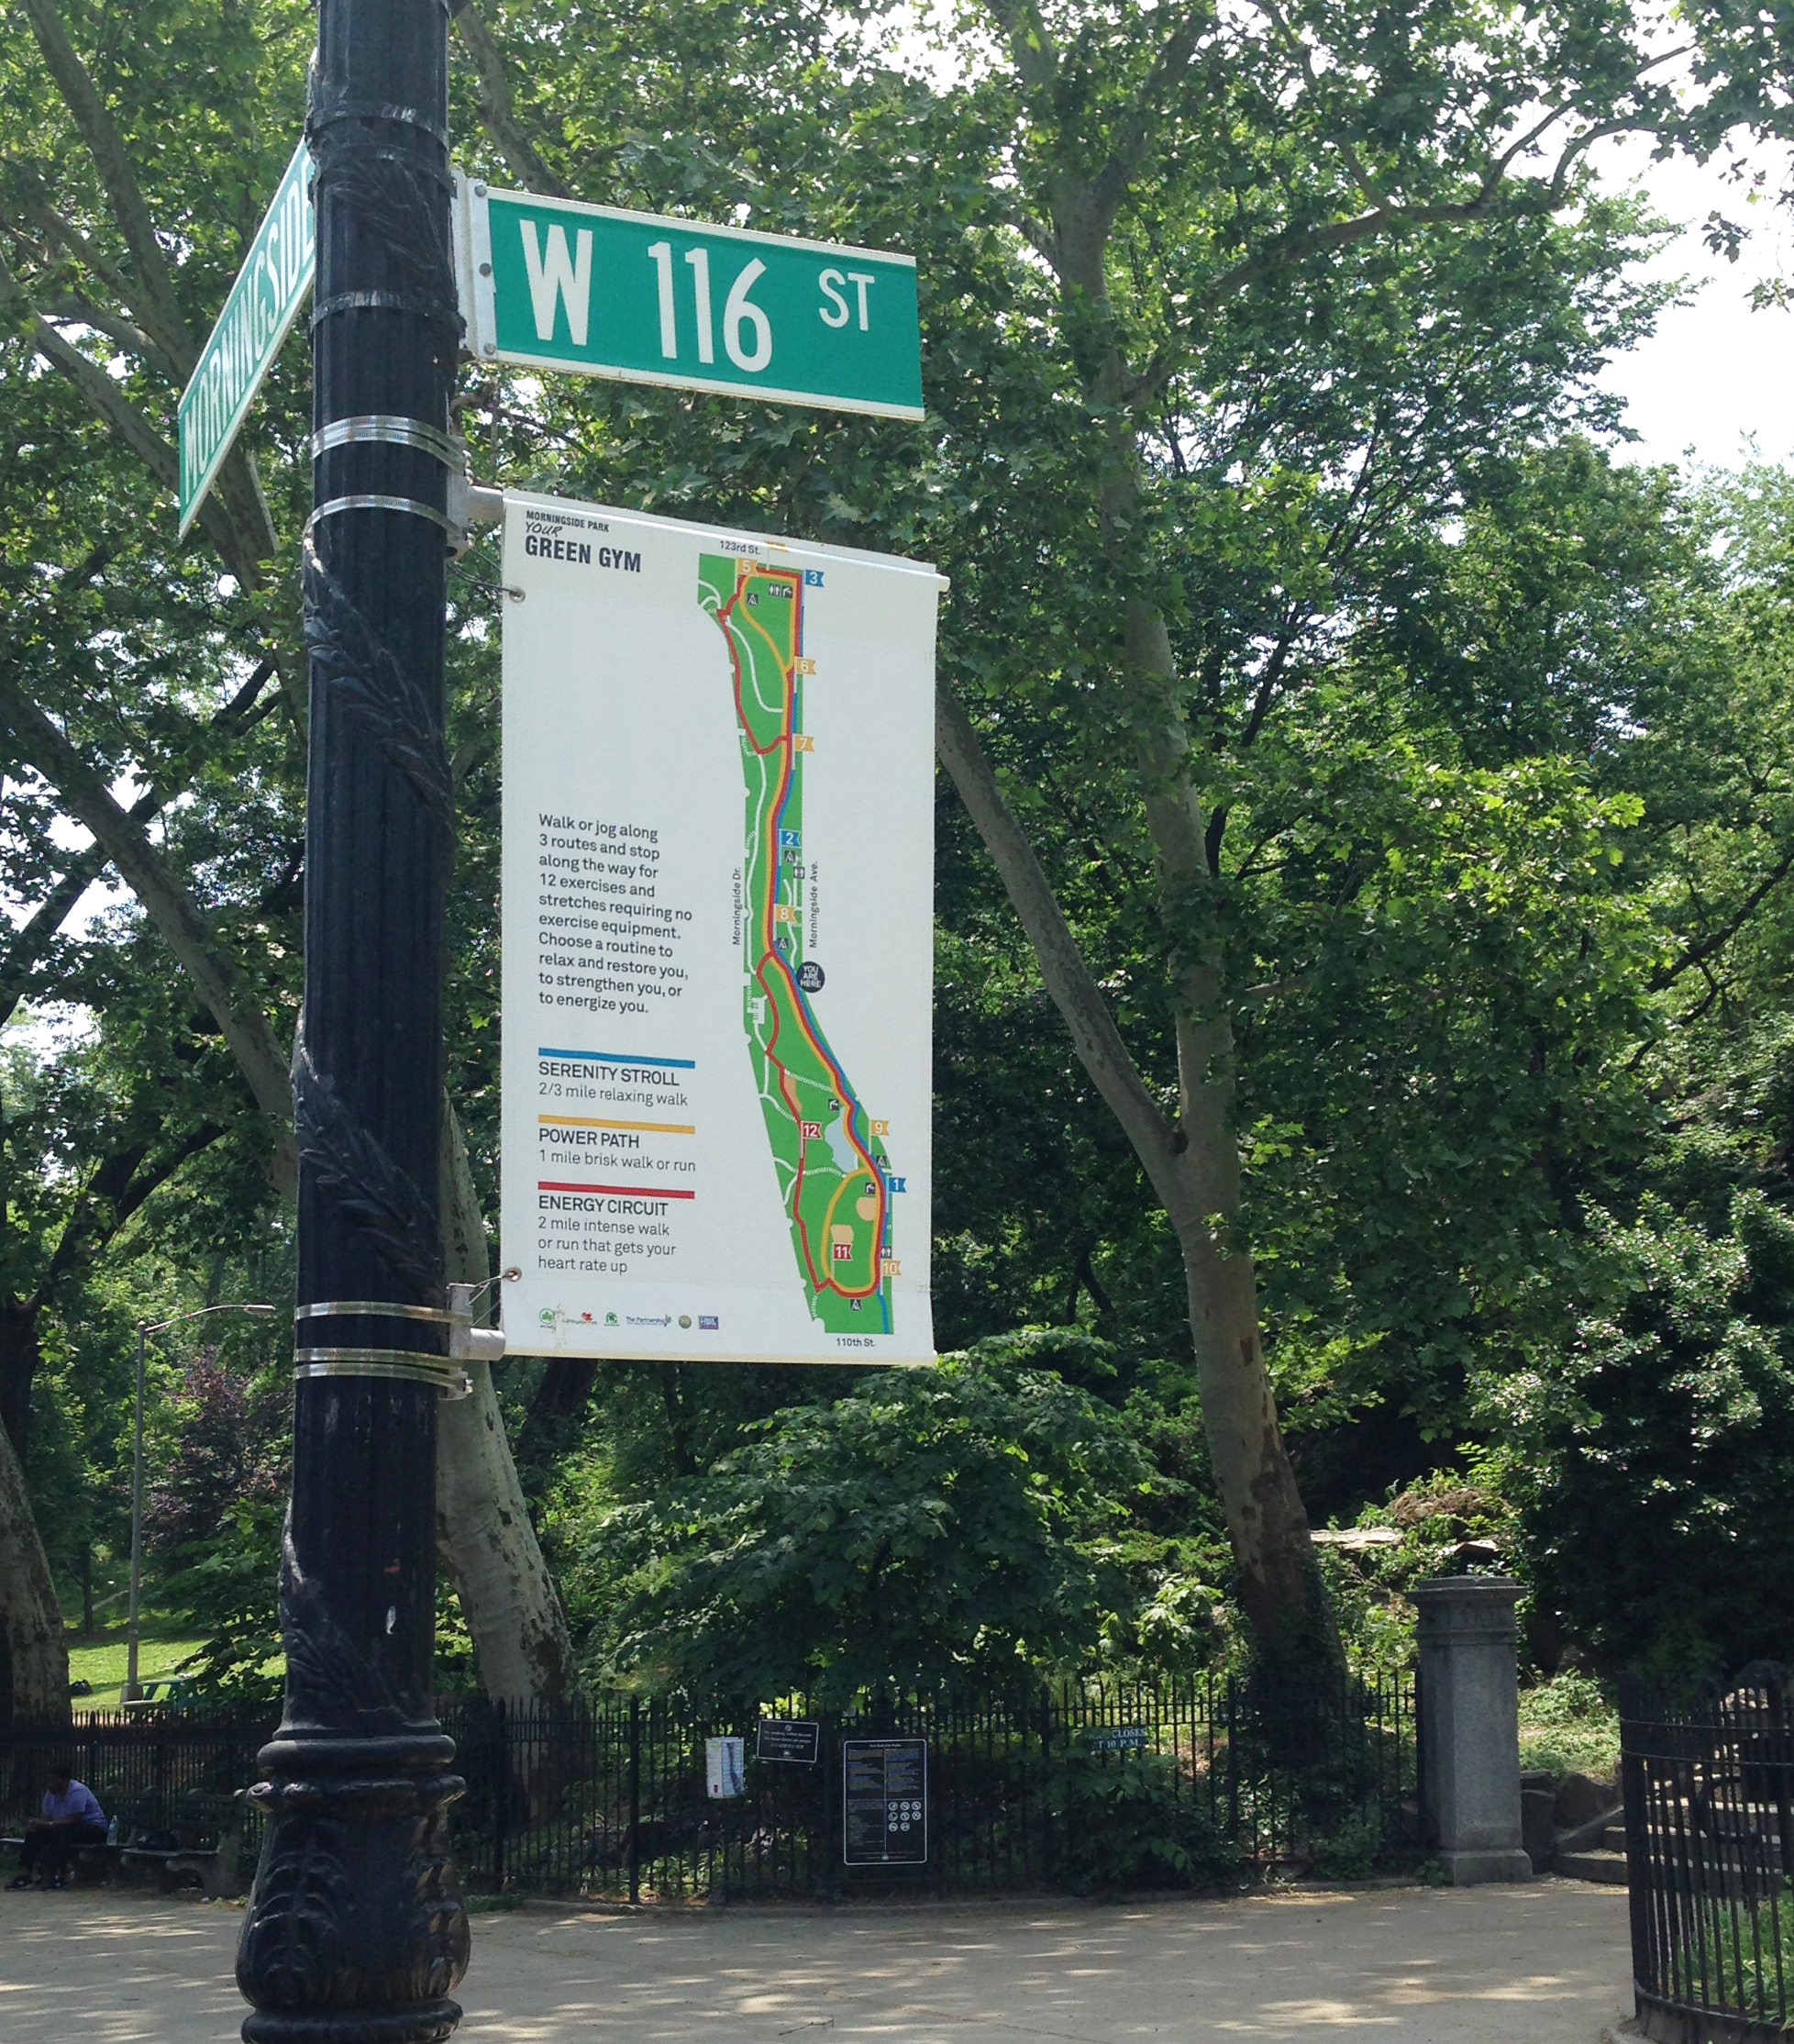 Morningside Park Green Gym